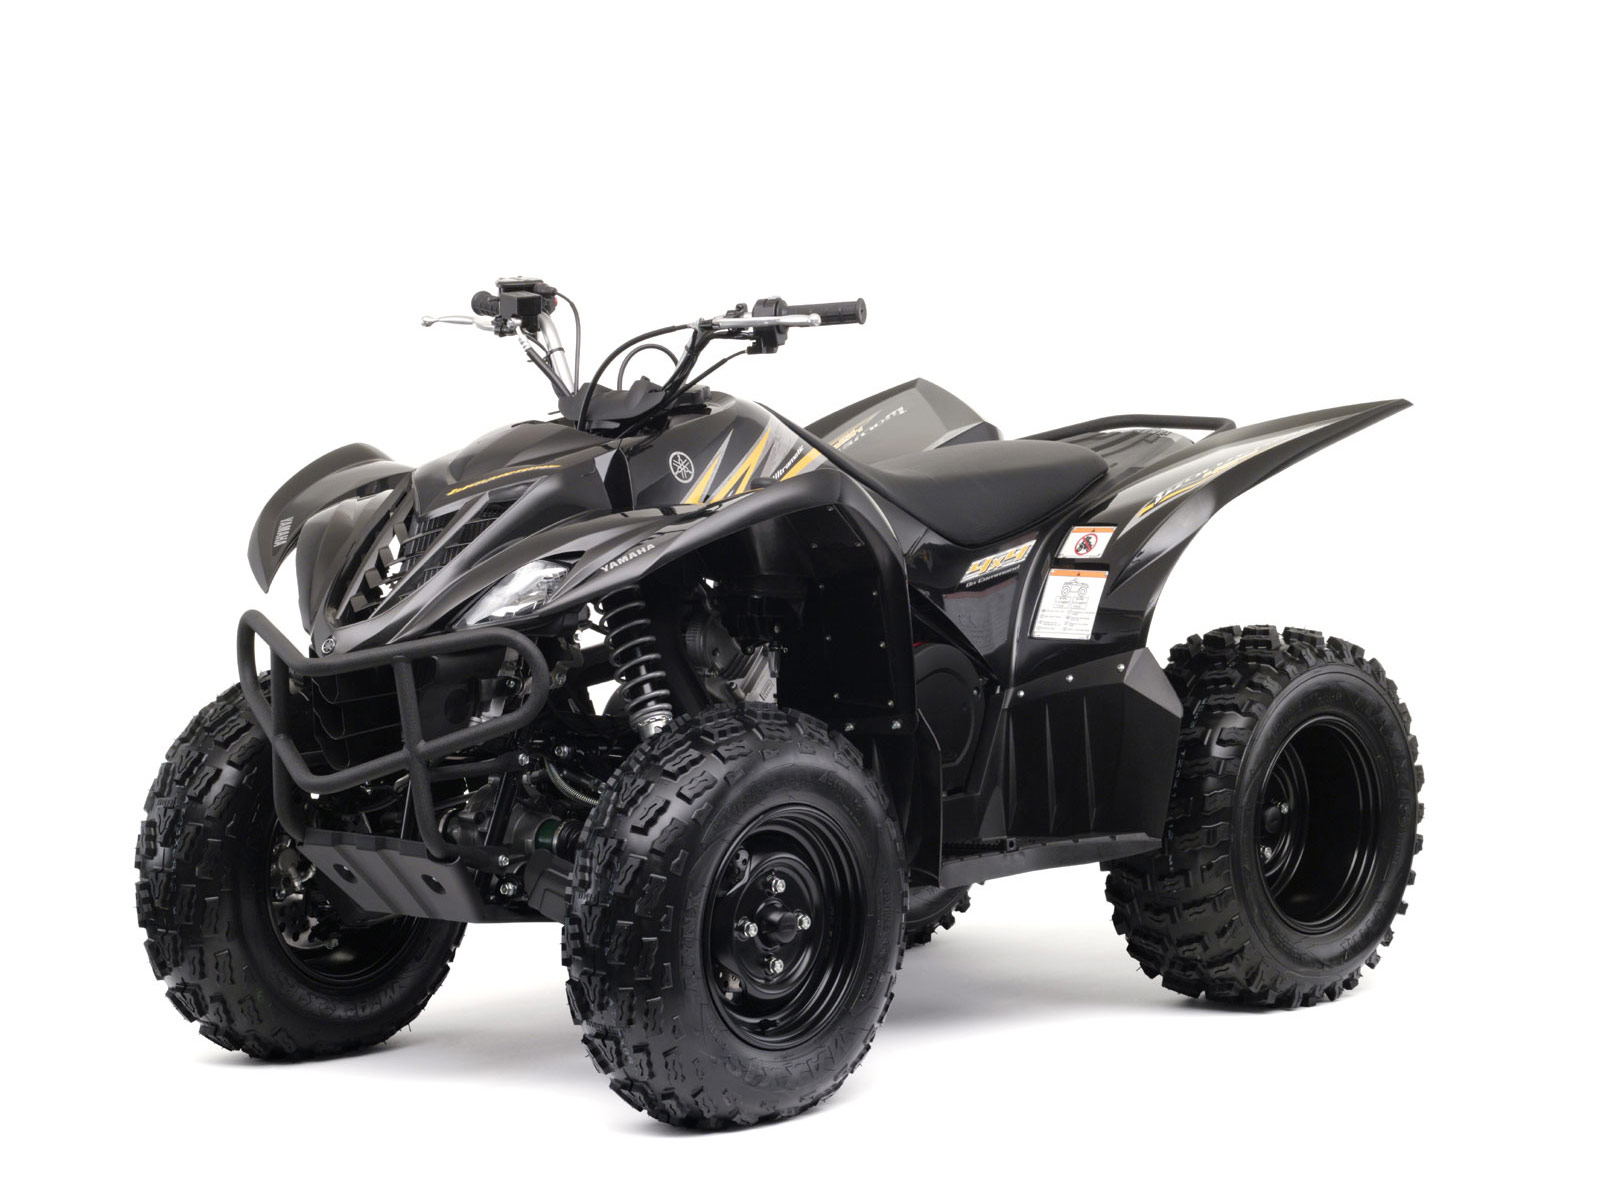 Yamaha atv pictures wolverine 450 2009 accident lawyers for Yamaha 4 wheeler 4x4